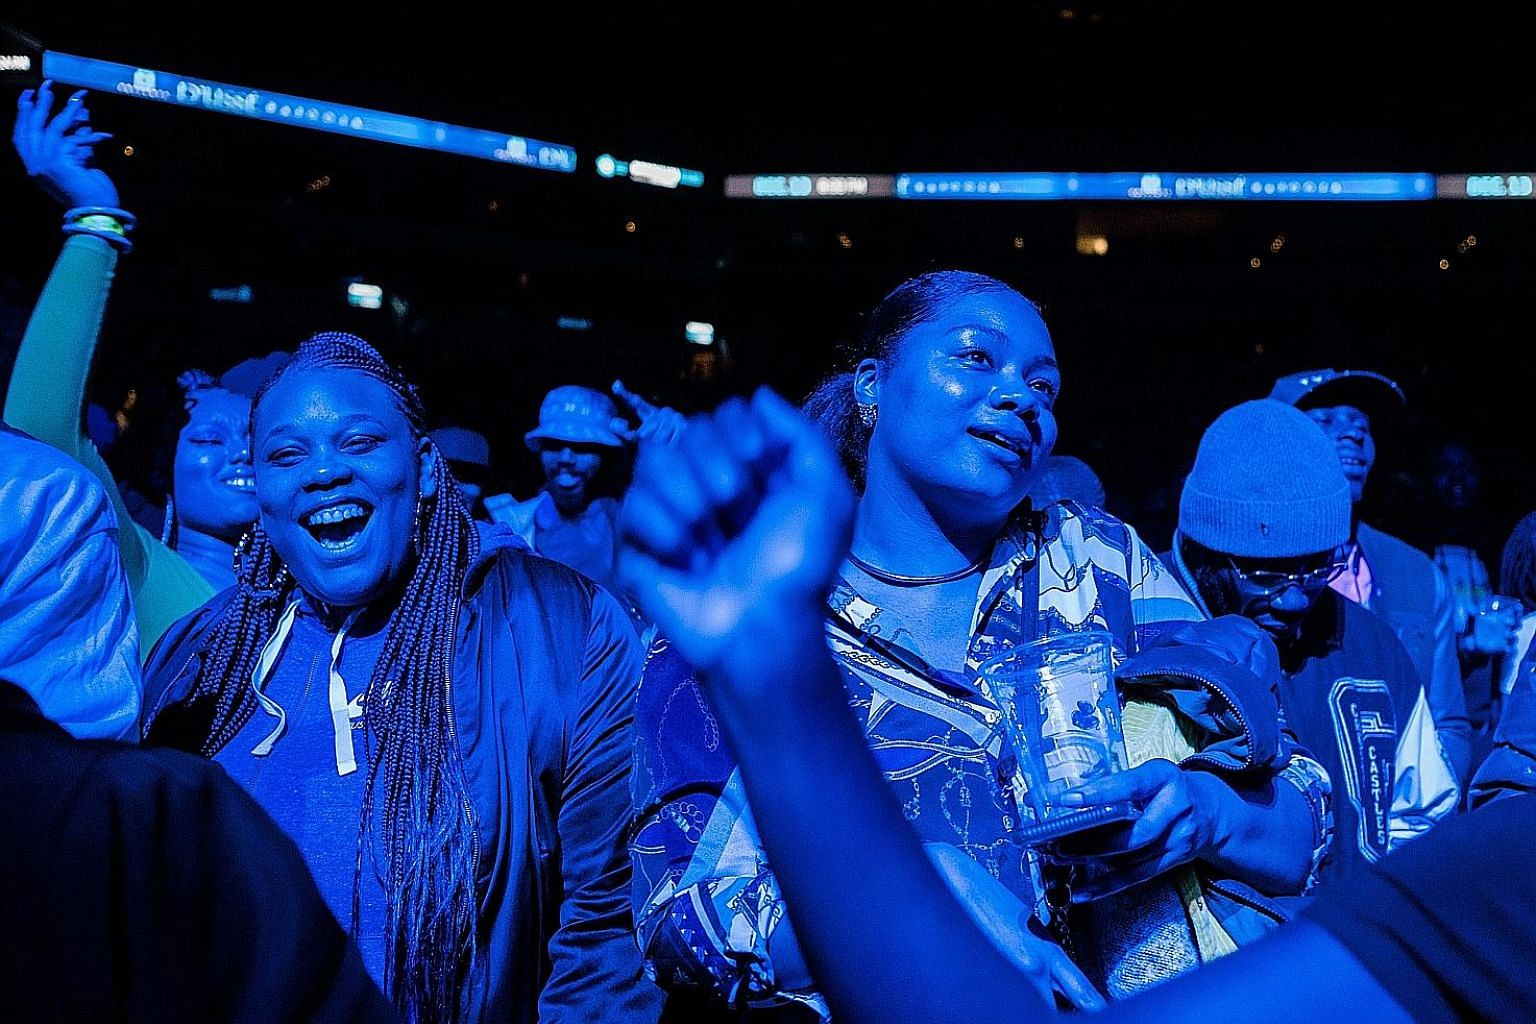 The D'usse Palooza hip-hop event has grown from an East Harlem house party attended by barely 50 people to an event that drew 9,000 to Barclays Centre (left) in New York last month, while expanding to more than a dozen US cities.